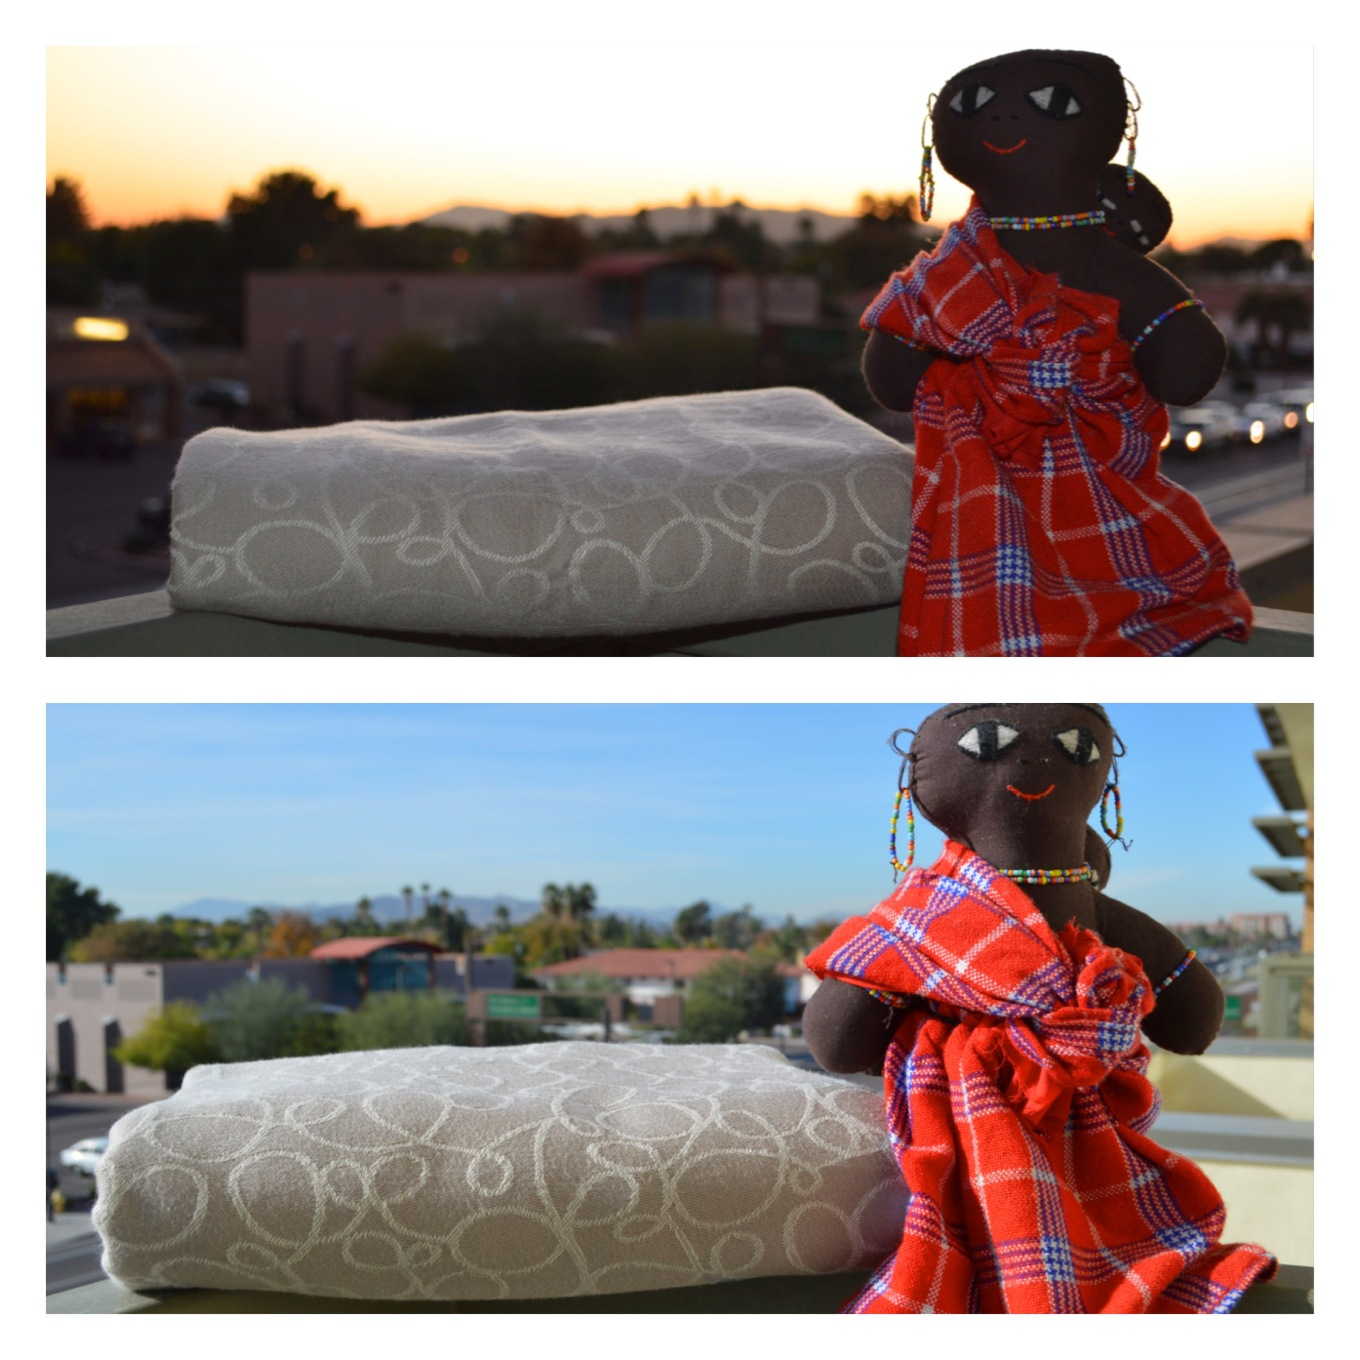 wrap is seen in the evening light with a slight gleam or sheen next to an african Masai babywearing doll an inch below the arm of the doll. The lower image shows the same wrap folded the same after first wash which is now fluffed up to twice as large as before washing such that it is now touching the arm of the African Masai babywearing doll.